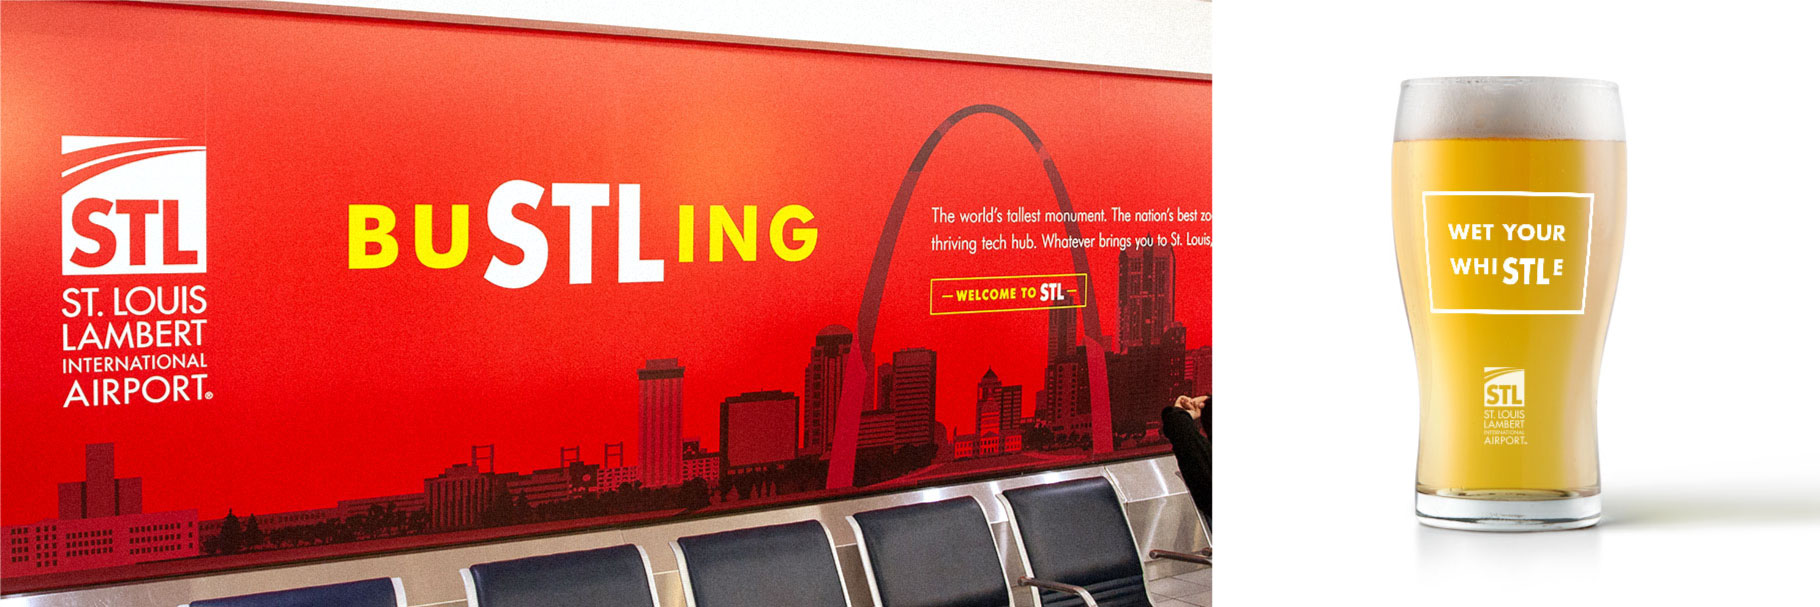 St. Louis Lambert International Airport red BuSTLing window graphics near baggage claim